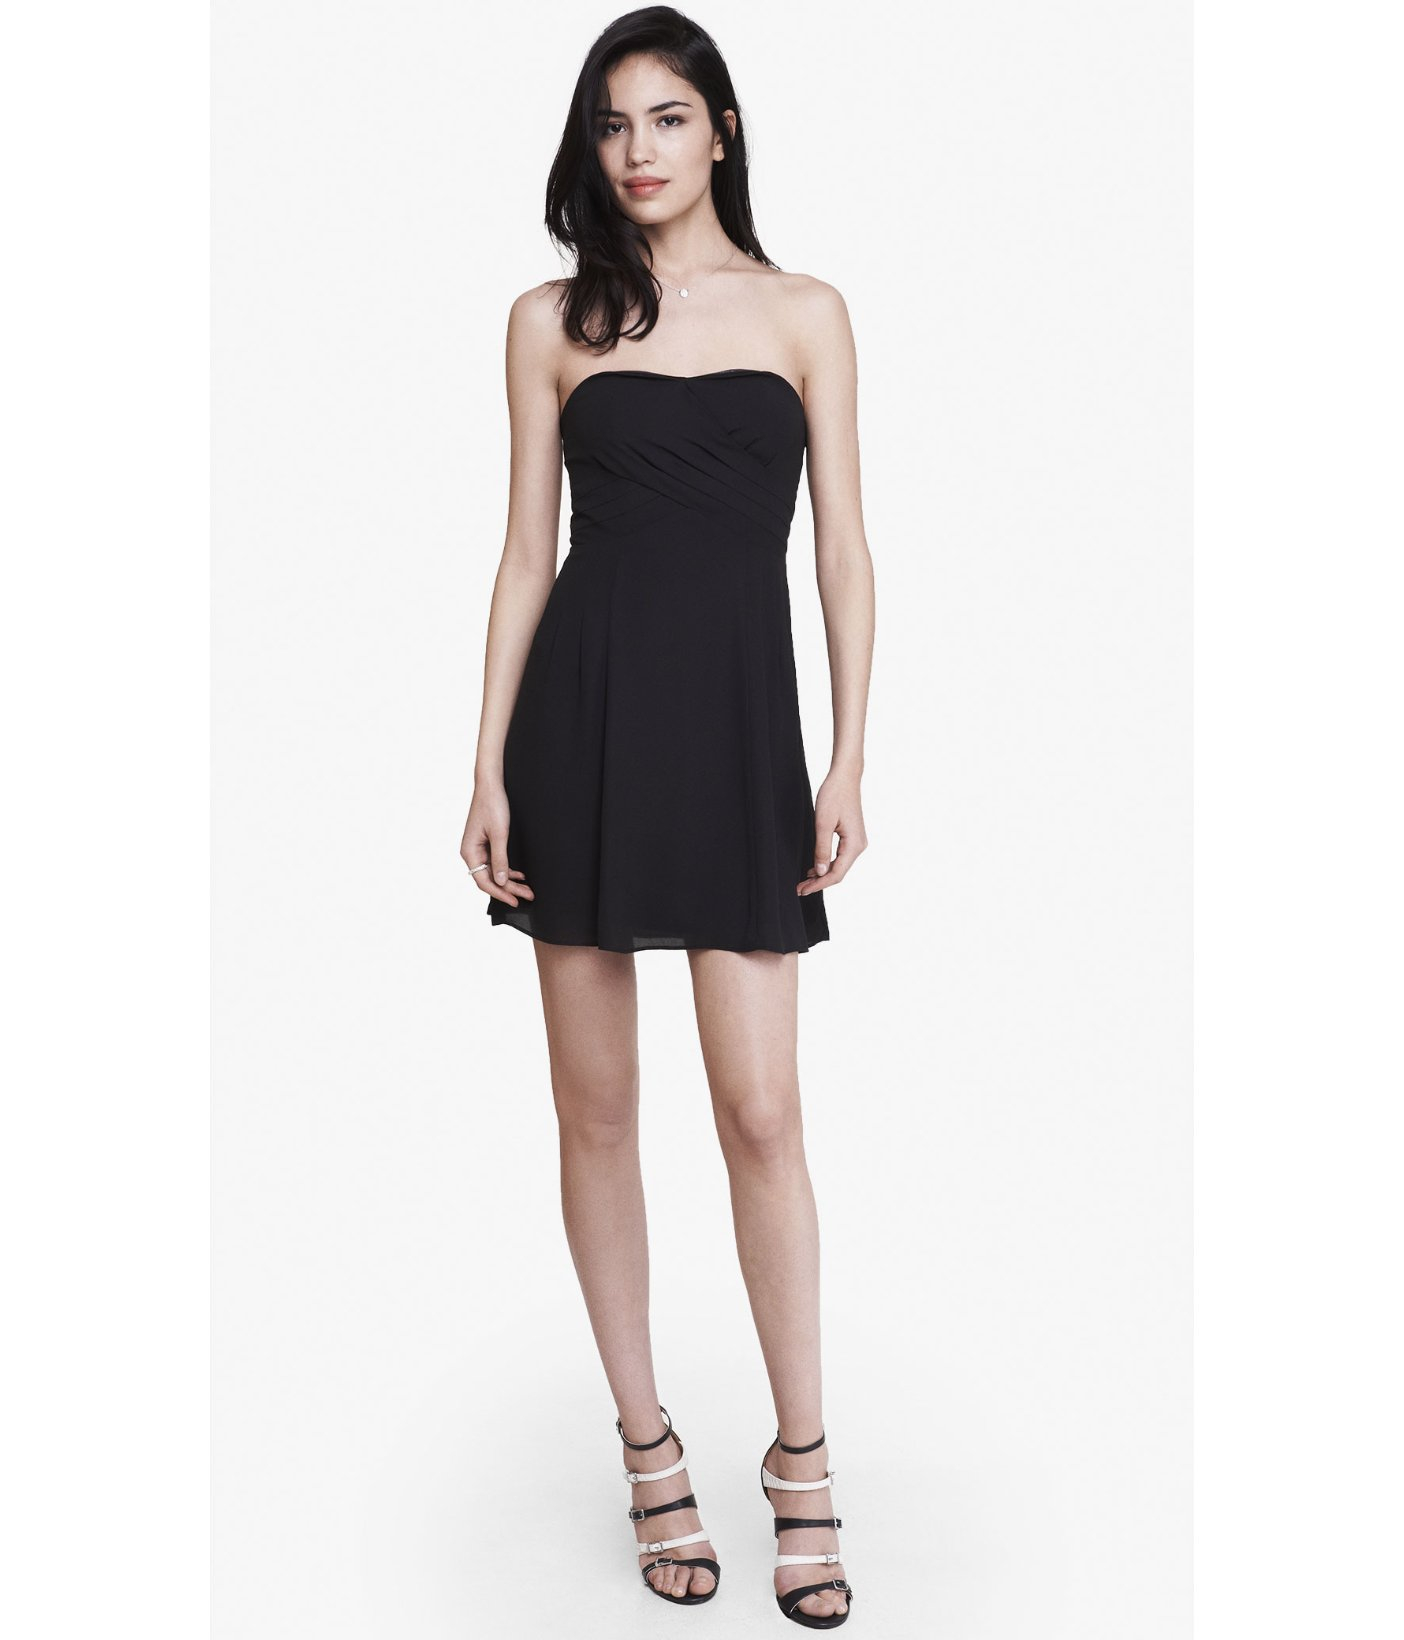 ea3299b1211 Express Black Strapless Crepe Fit And Flare Dress in Black - Lyst